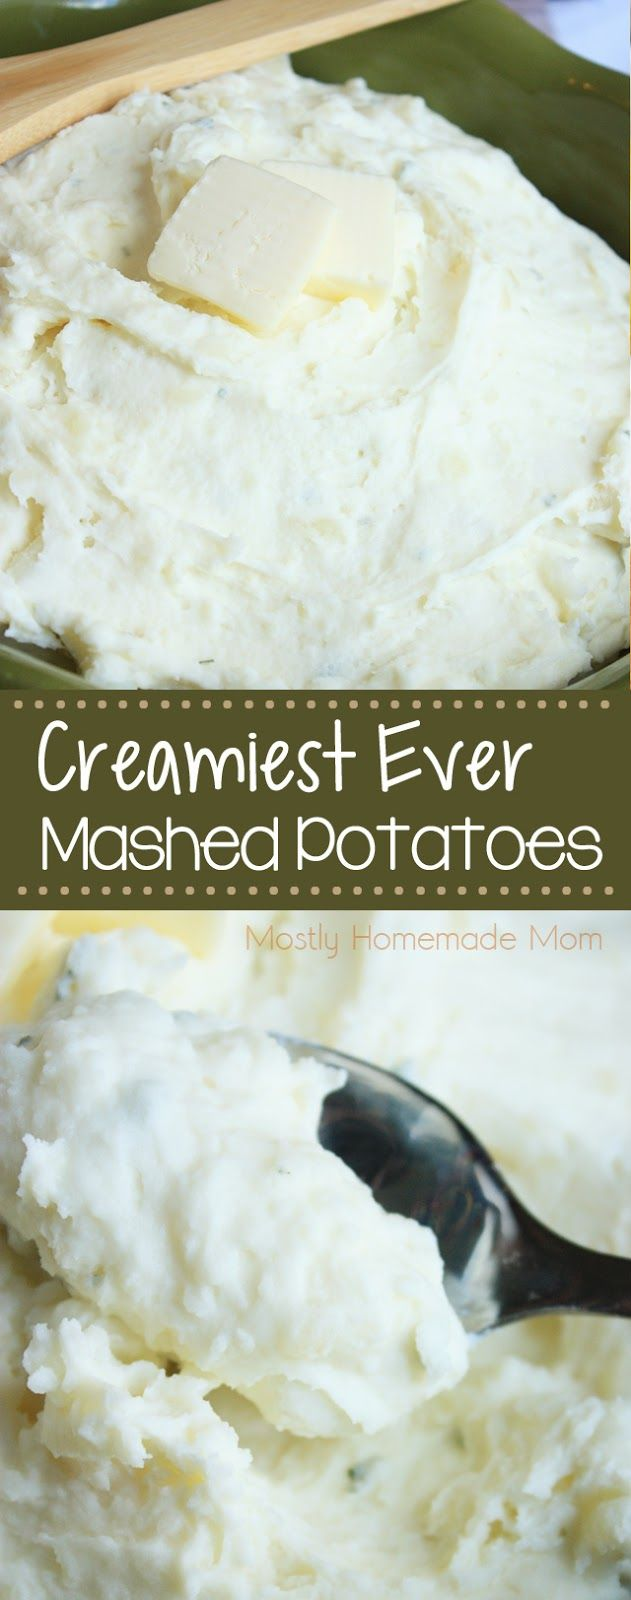 Creamiest Ever Mashed Potatoes - Mashed red skin potatoes with sour cream, cream cheese, parsley, and garlic - these are the perfect side-dish to any comfort food dinner you're planning! Great for a pot-luck, too!